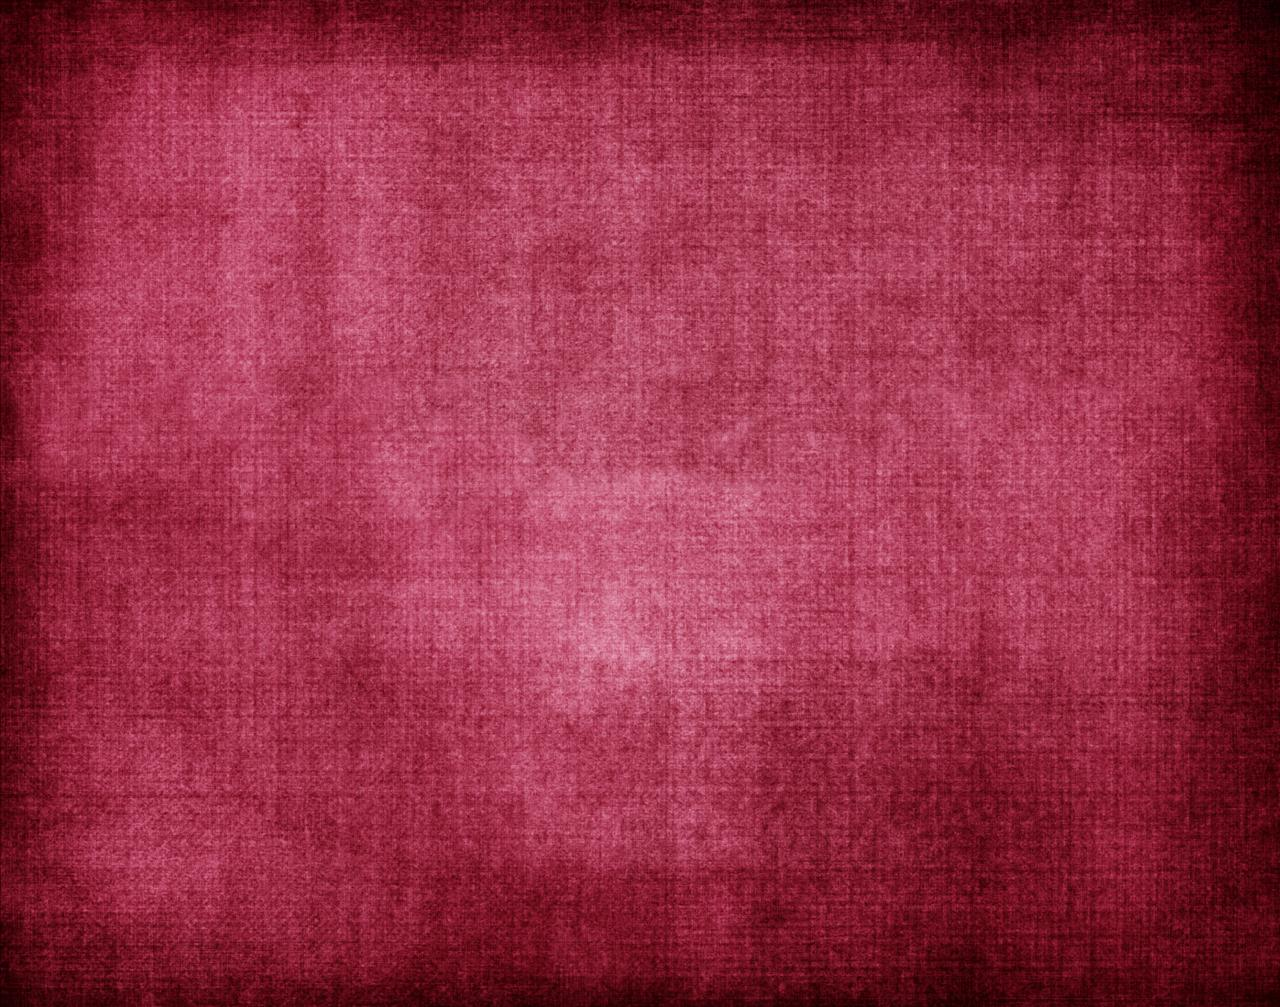 Passionate Burgundy PPT Backgrounds